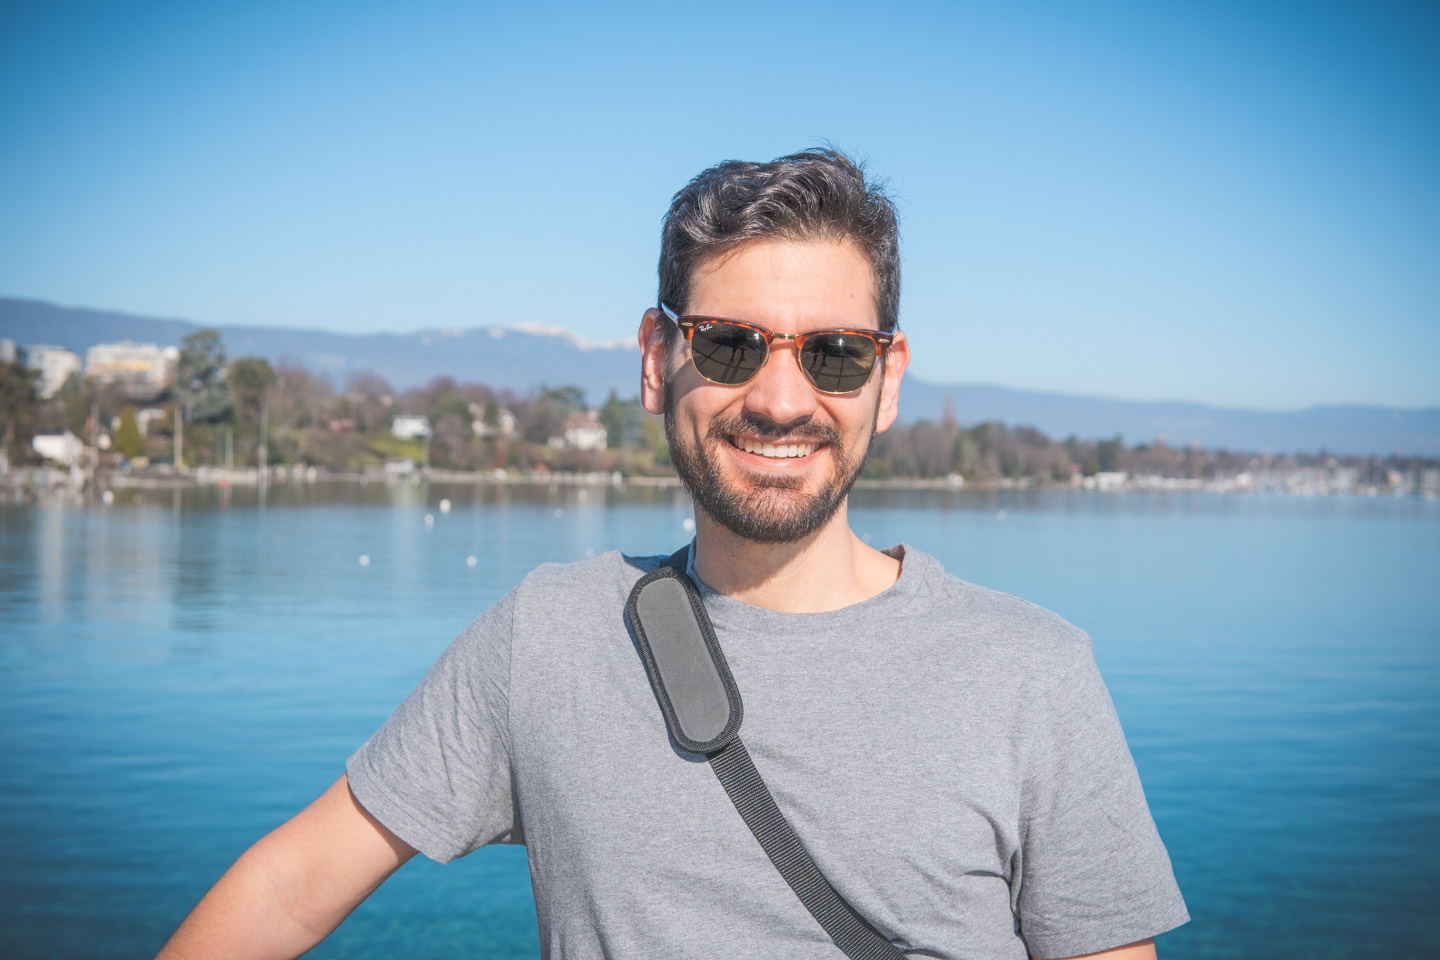 Hi, I'm Ed Orozco. UX consultant passionate about design productivity and the future of work.